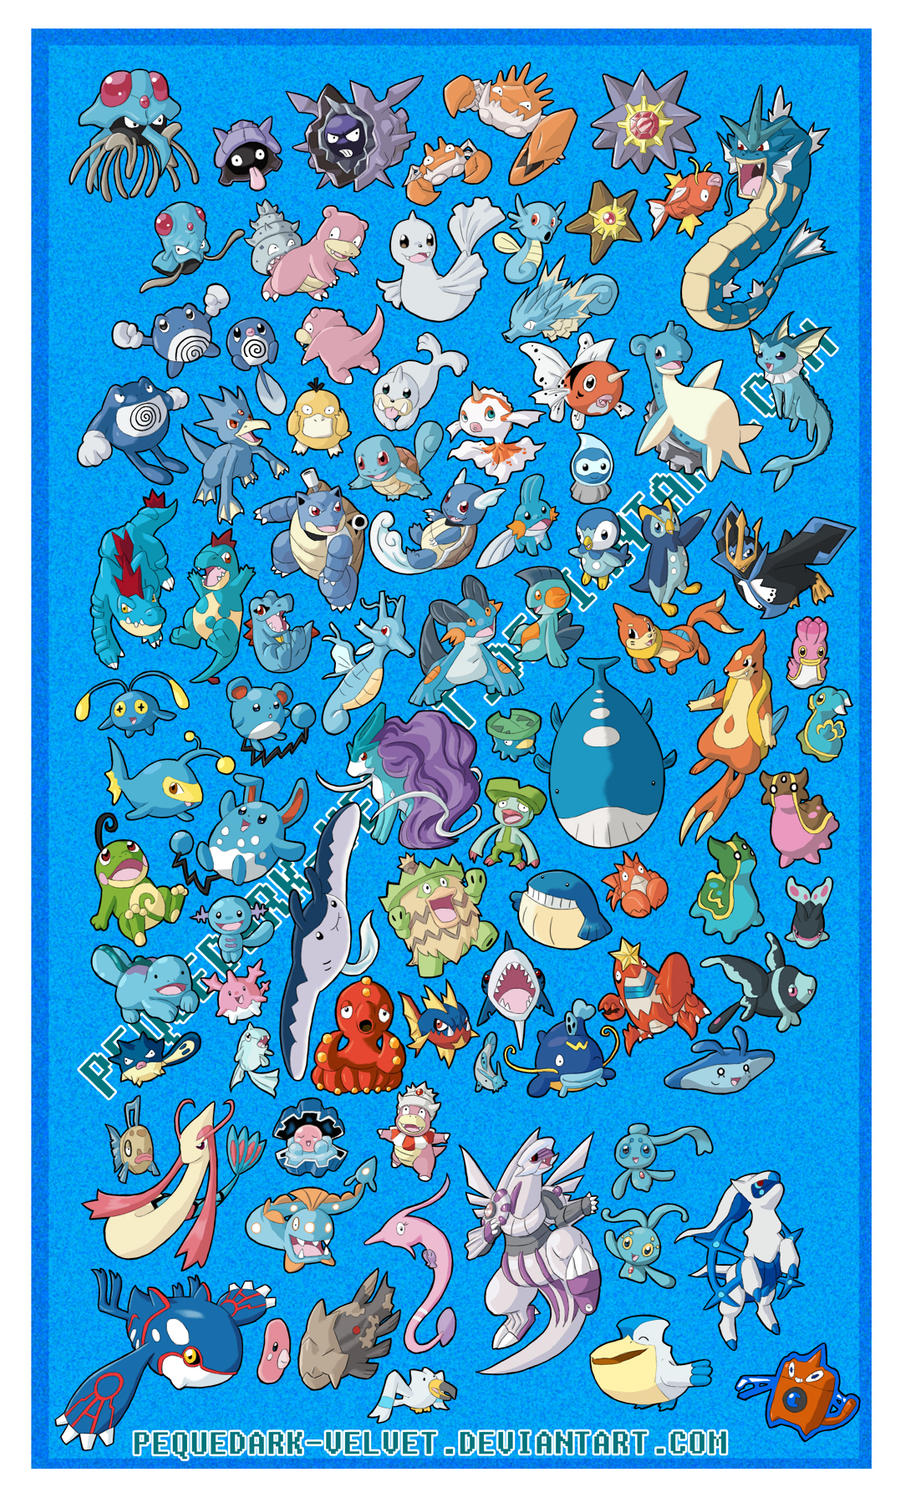 CHIBI POKEMON STICKERS: WATER by PEQUEDARK-VELVET on ... Wailord And Quagsire